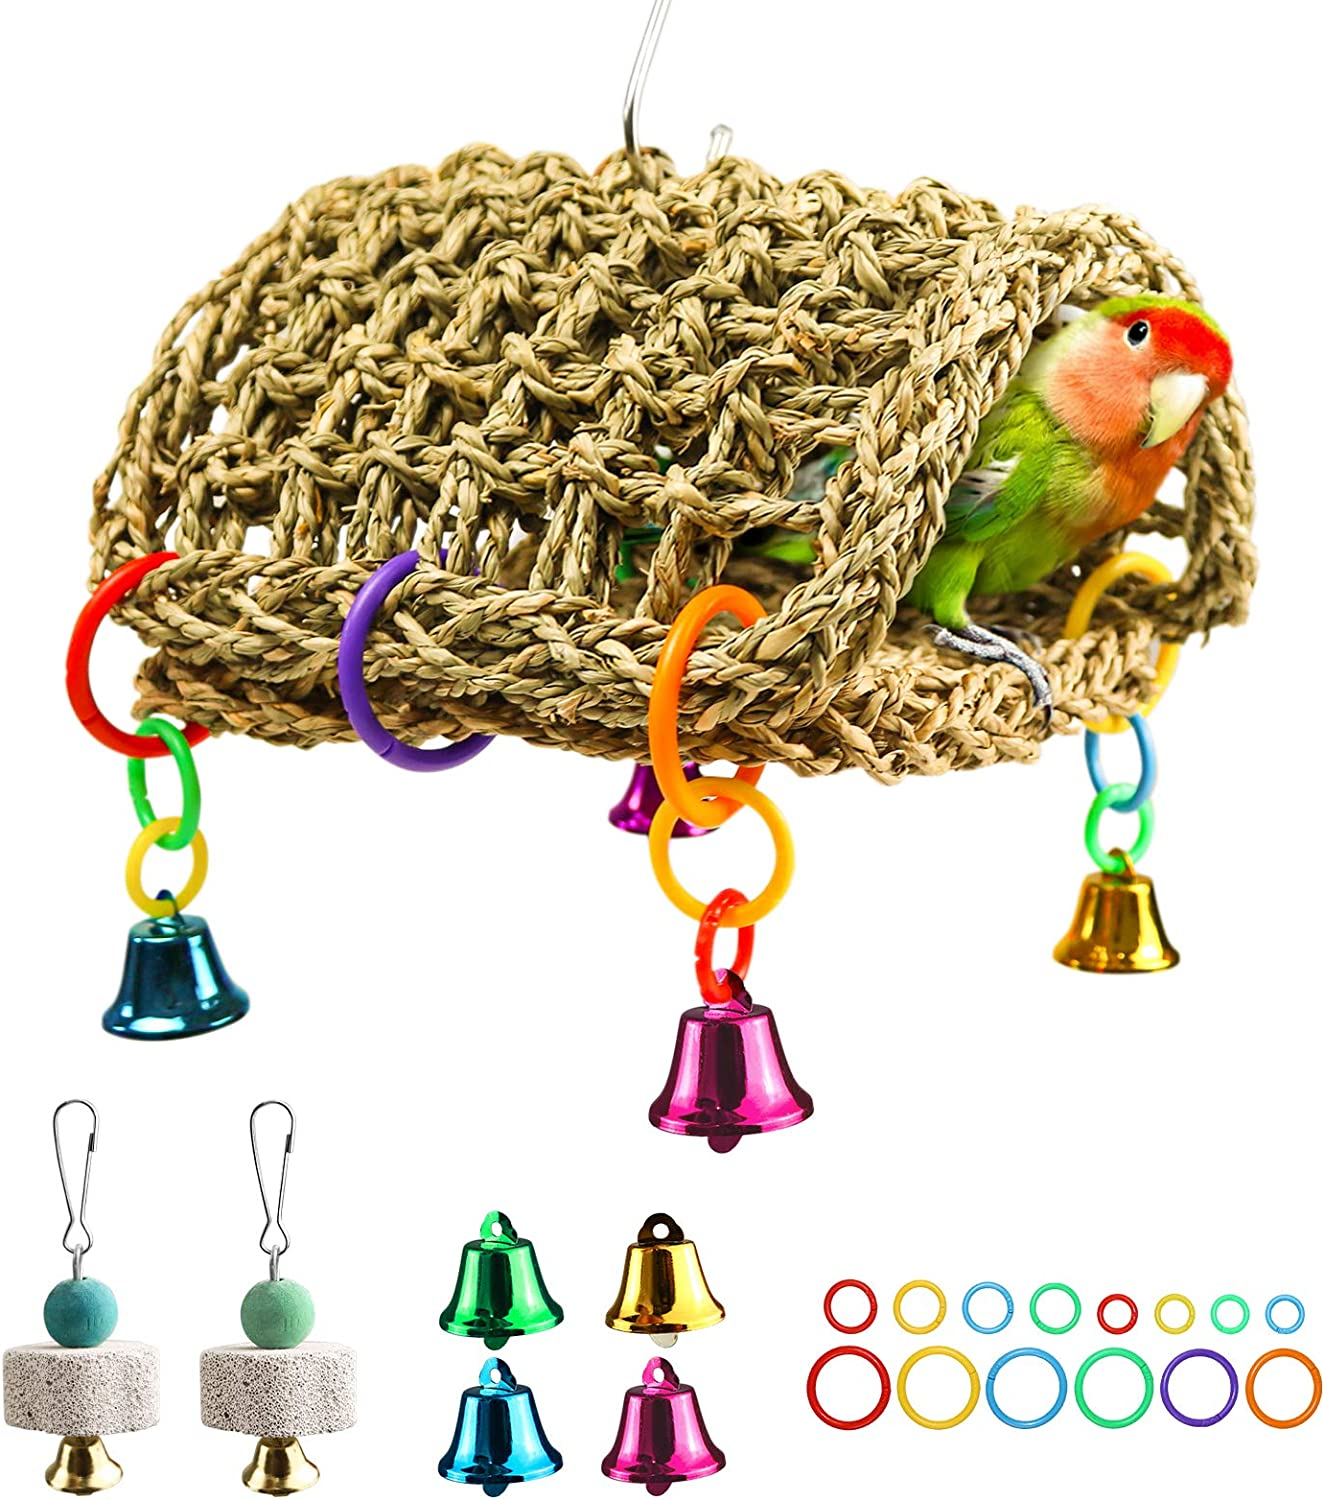 Bird Cheap sale Seagrass Tucson Mall Hammock DIY Toys Parrot Hangin Nest Hut Shed House